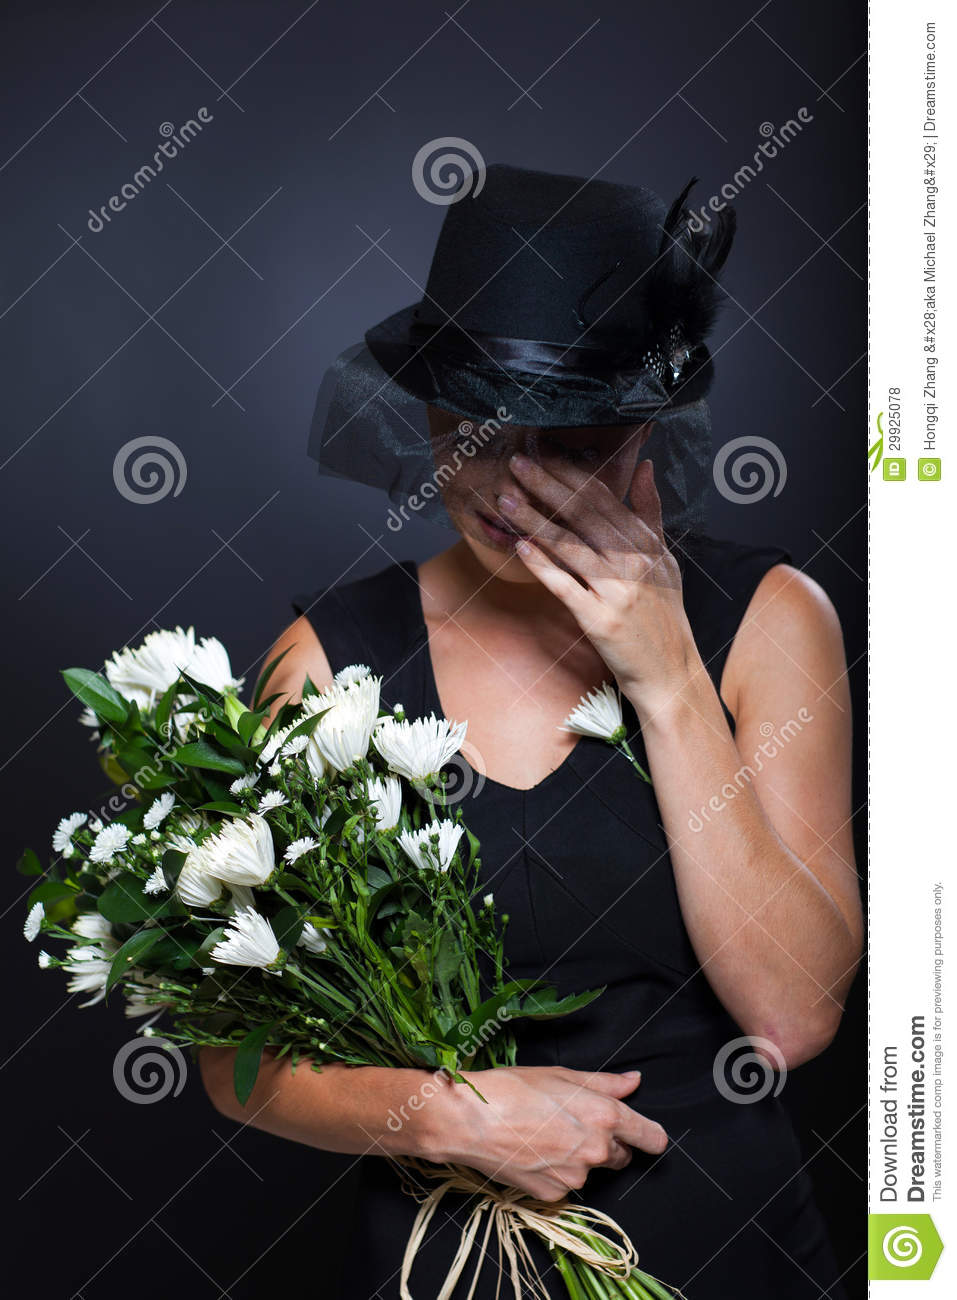 13/10/2014· about press copyright contact us creators advertise developers terms privacy policy & safety how youtube works test new features press copyright contact us creators. Widow Crying Funeral Royalty Free Stock Photos - Image